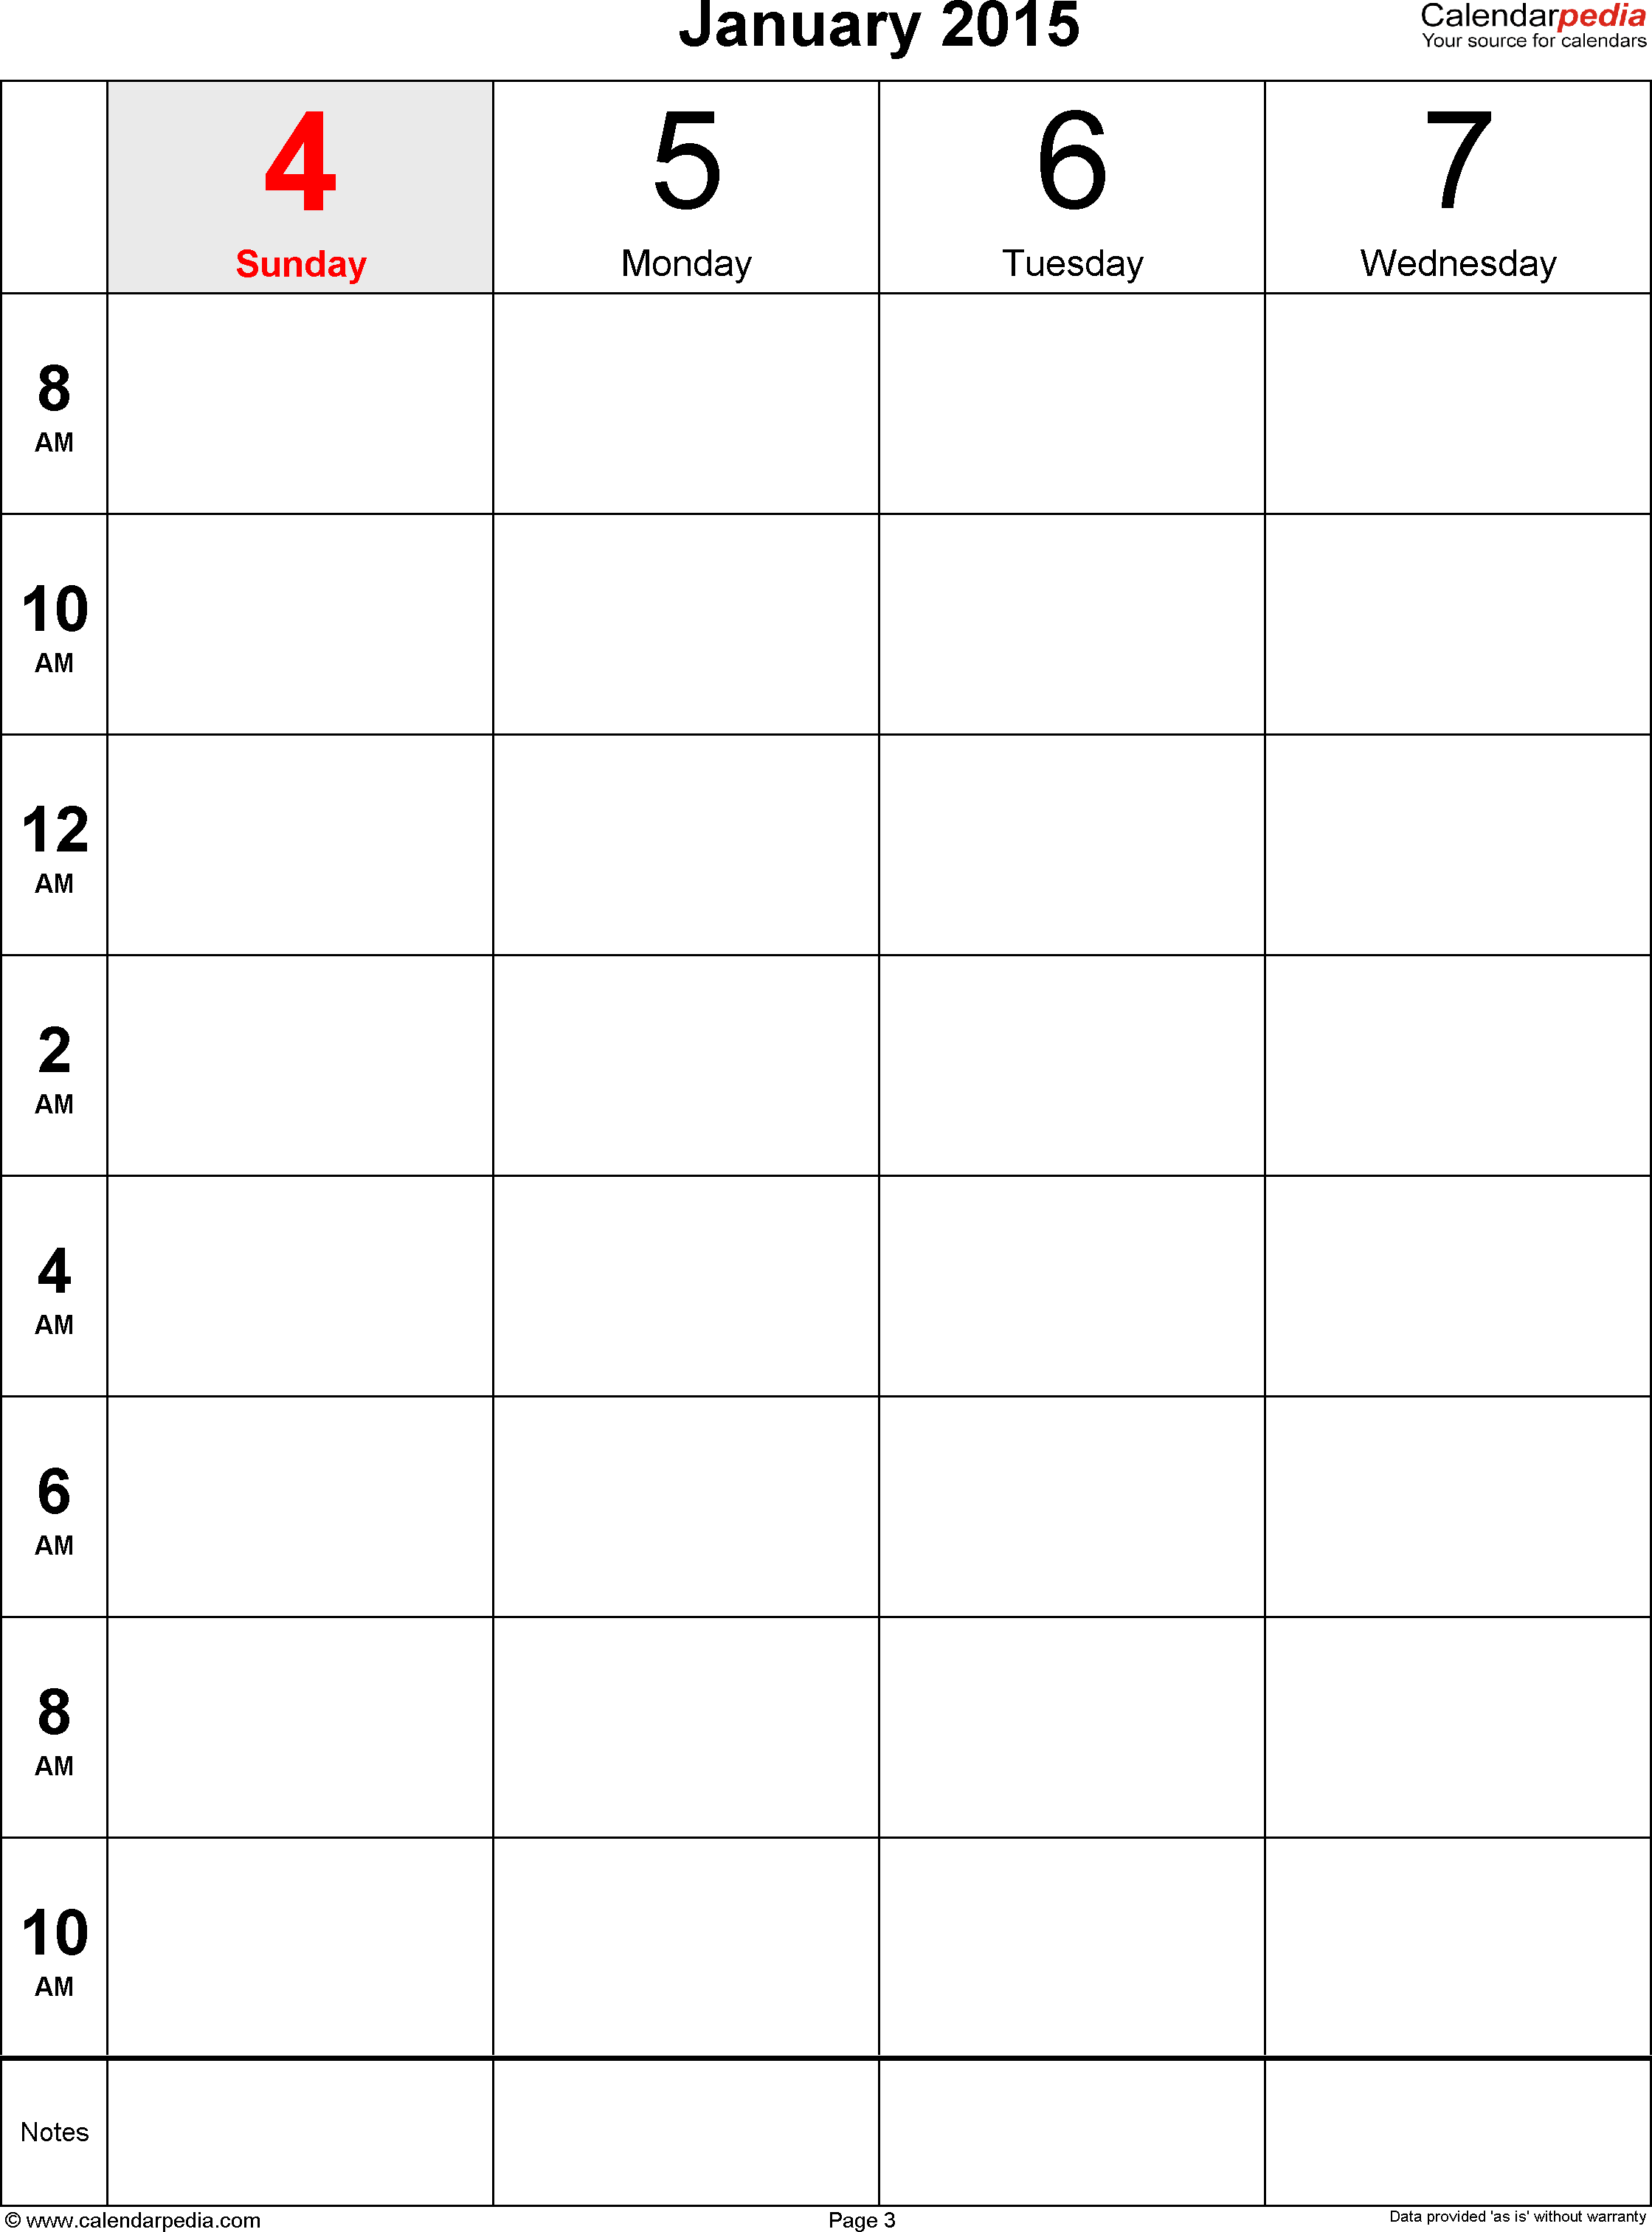 Weekly calendar 2015: template for Word version 12, portrait, 106 pages, 2 pages to a week (8 blocks of 2 hours per day, 8am to 11:59pm)